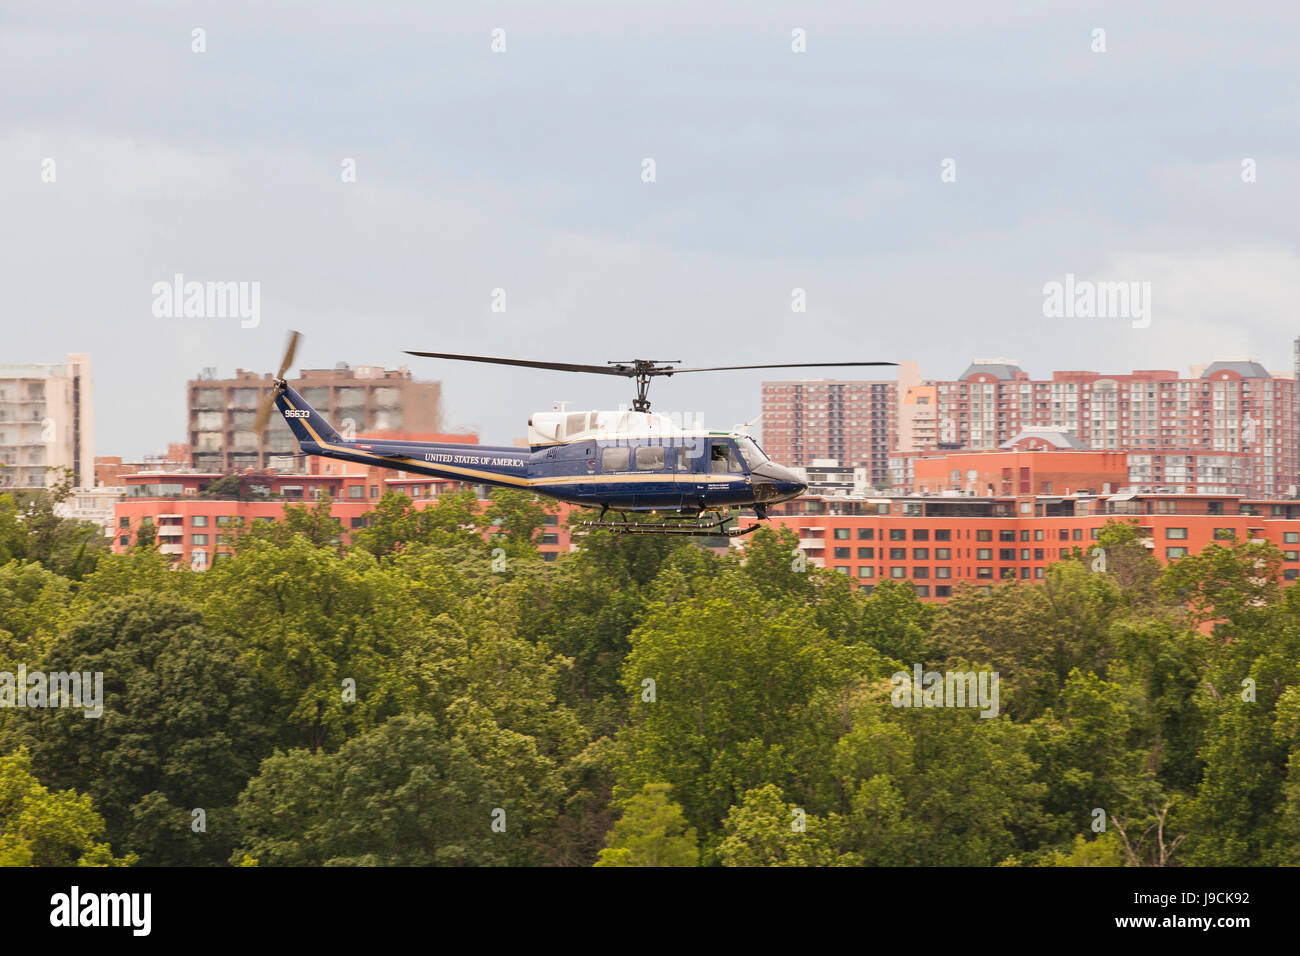 US Air Force 1st Helicopter Squadron , Bell UH-1N, flying low - Washington, DC USA - Stock Image